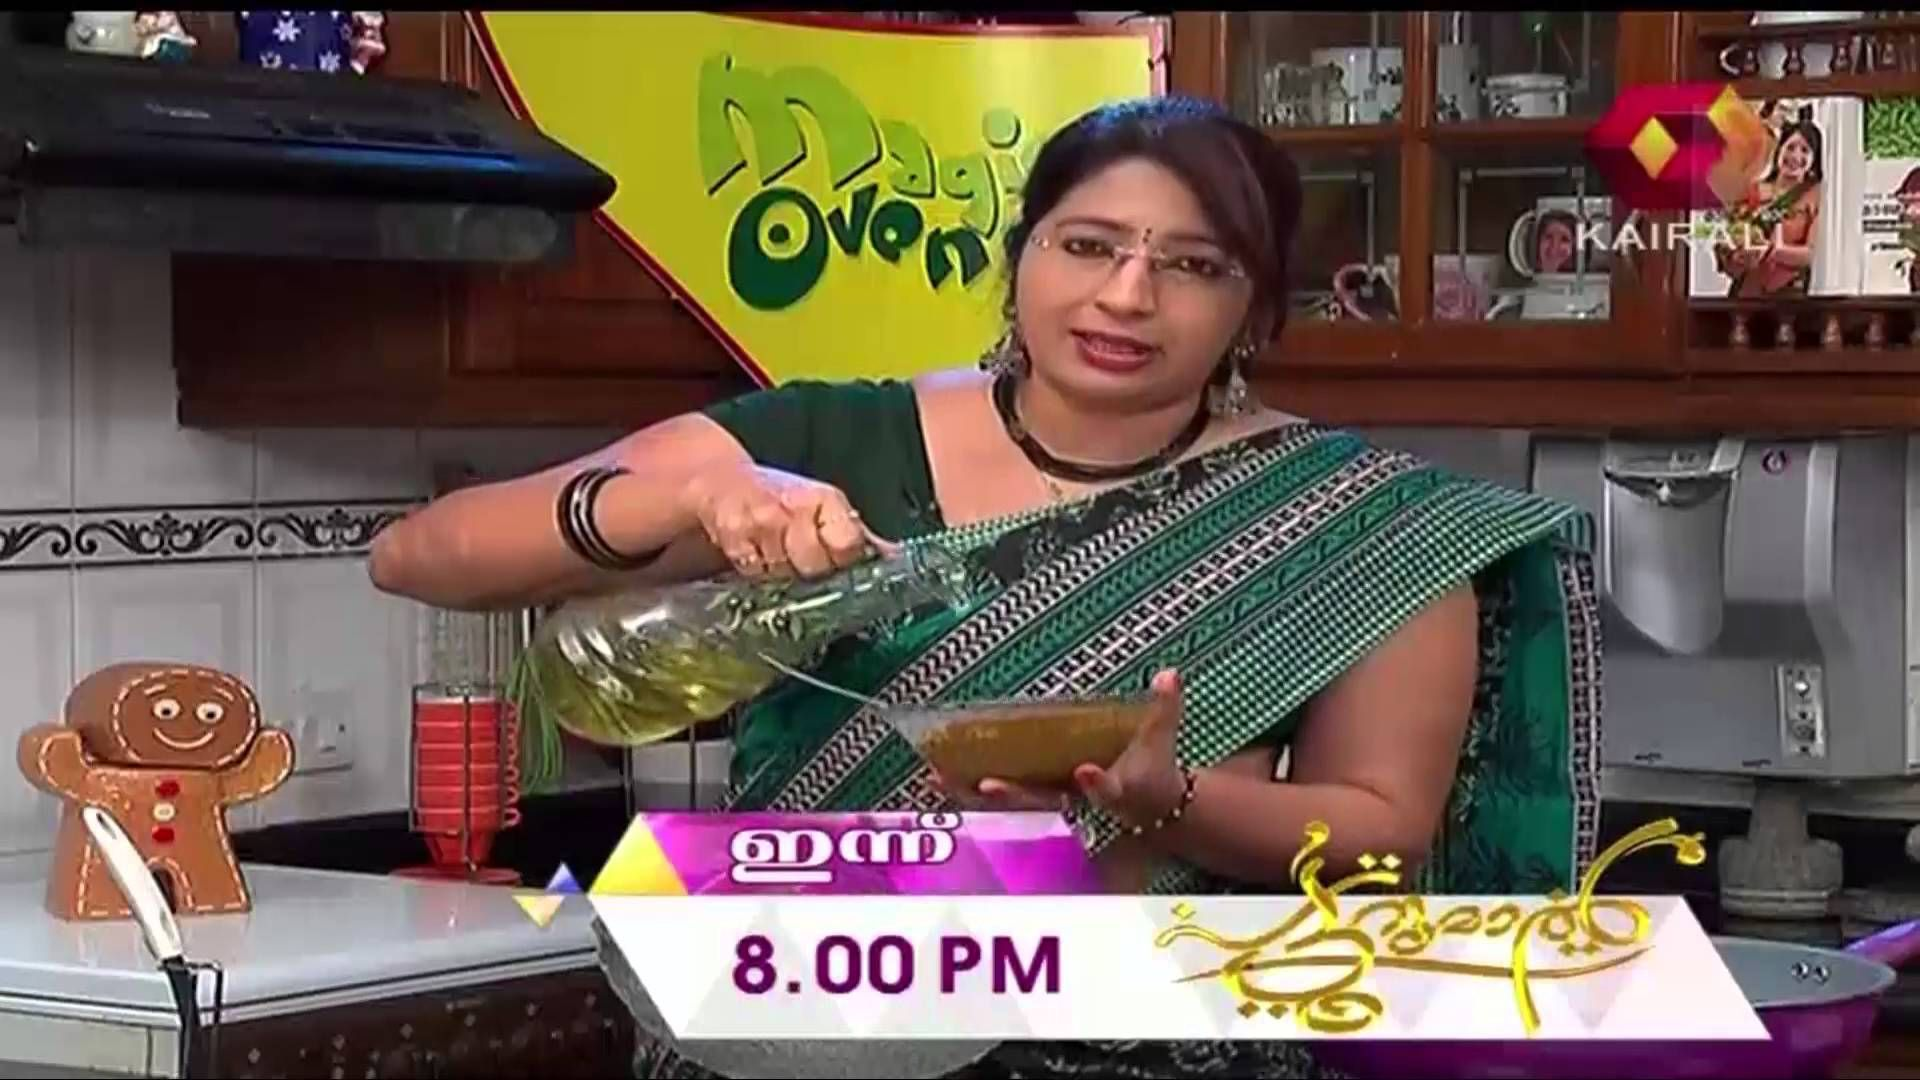 Magic Oven Is A Cookery Show On Kairali Tv Presented By Celebrity